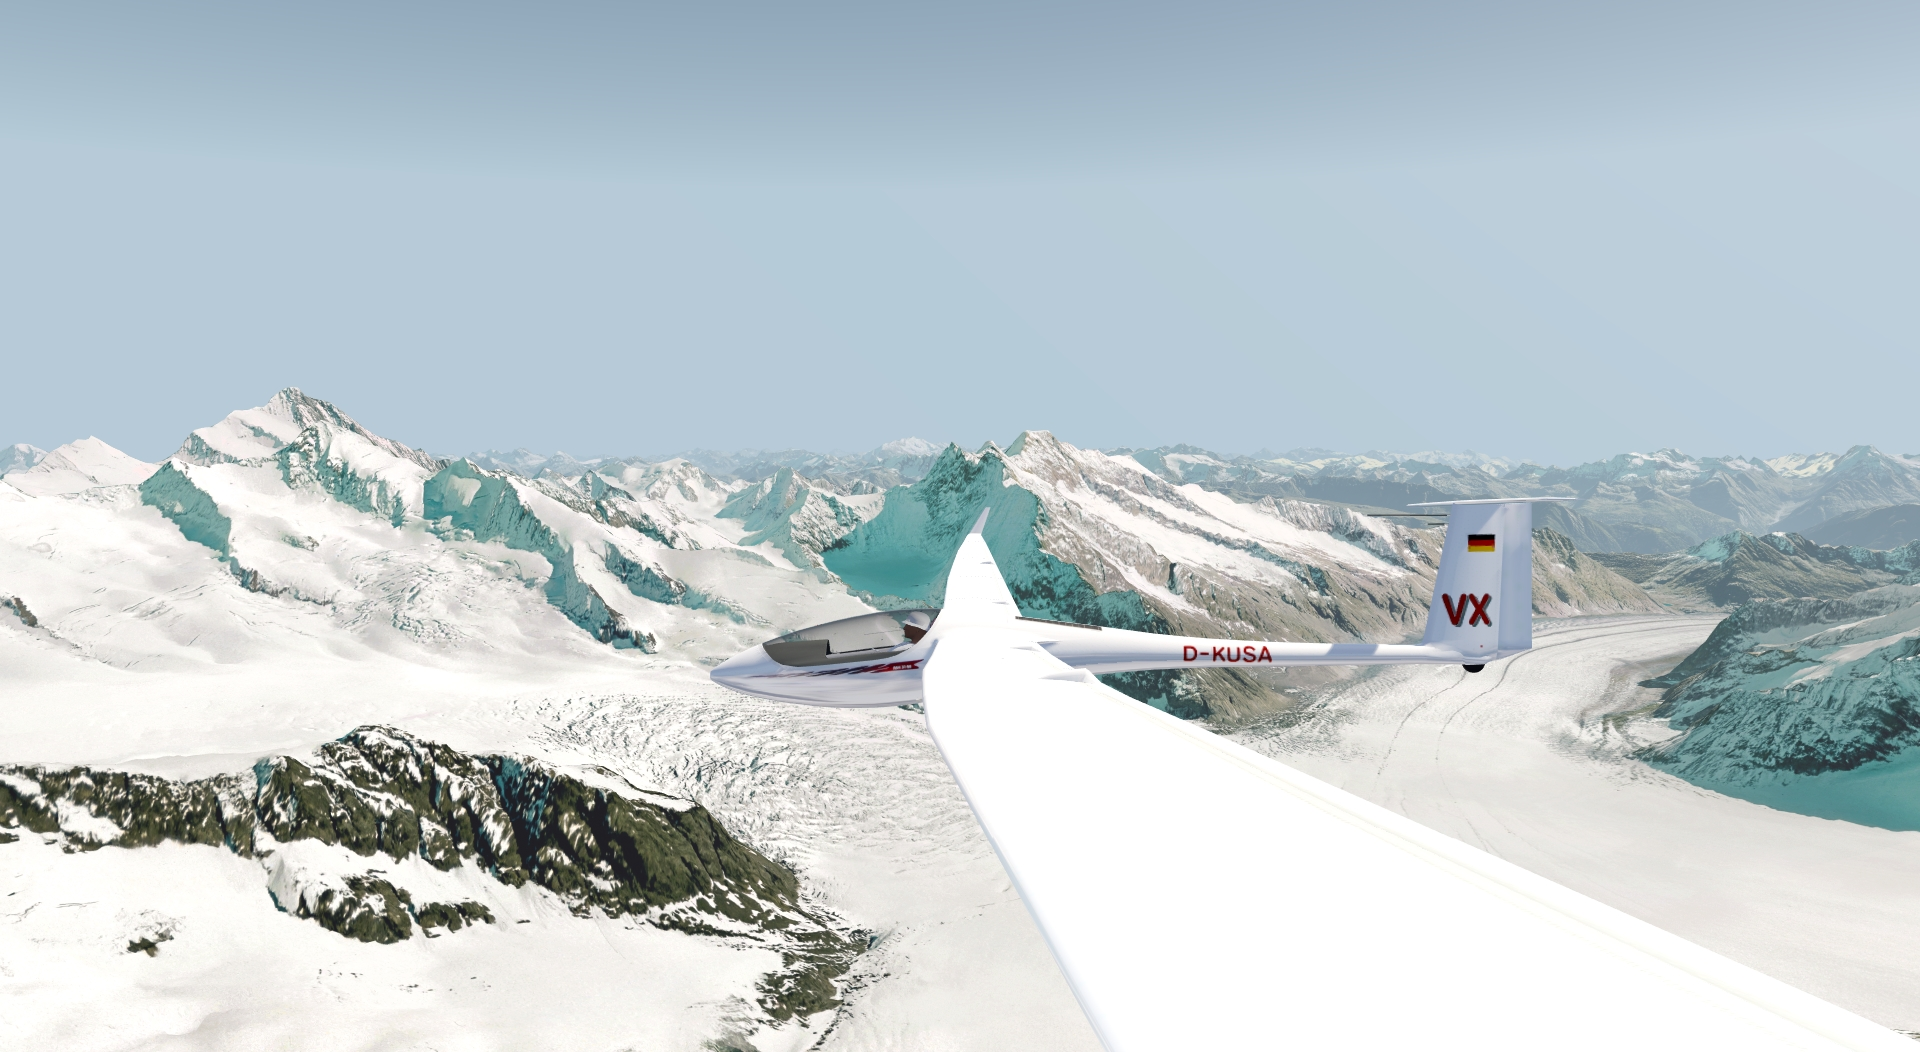 ASH 31 Mi in the AeroflyFS flight simulator